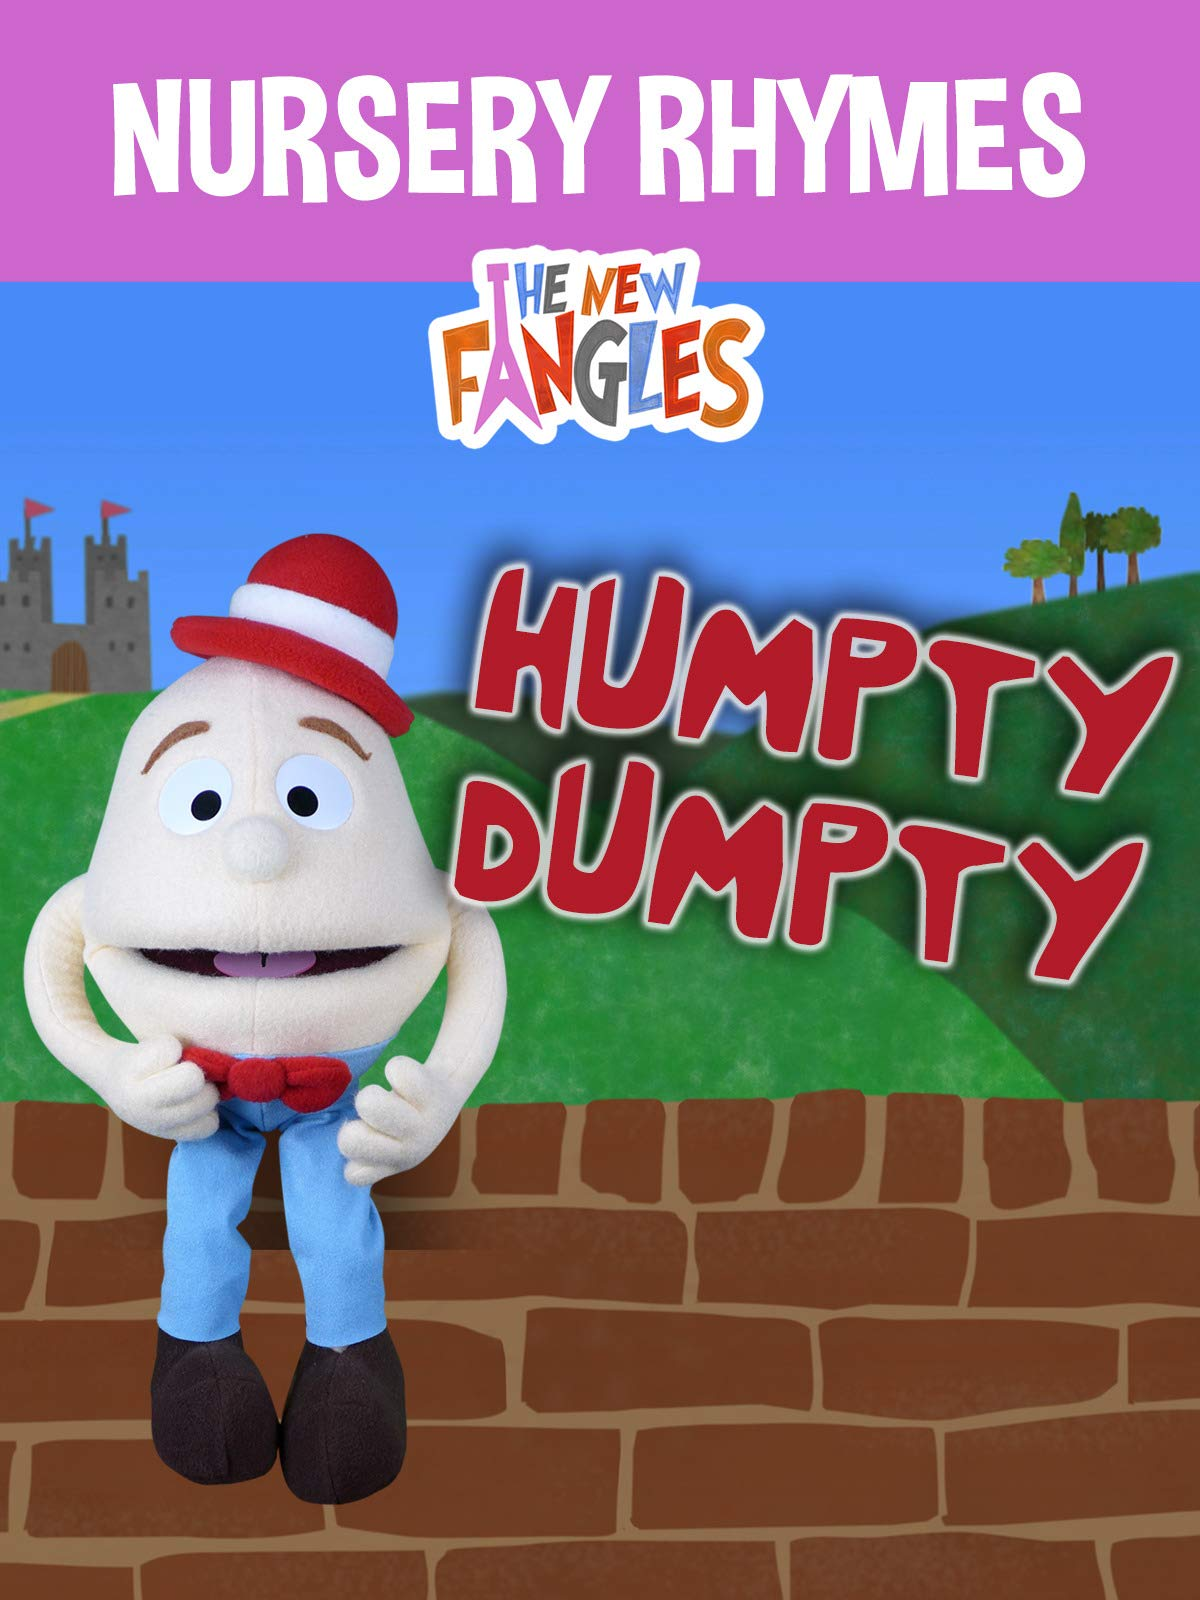 Humpty Dumpty Sat on a Wall - Nursery Rhymes by The New Fangles on Amazon Prime Video UK